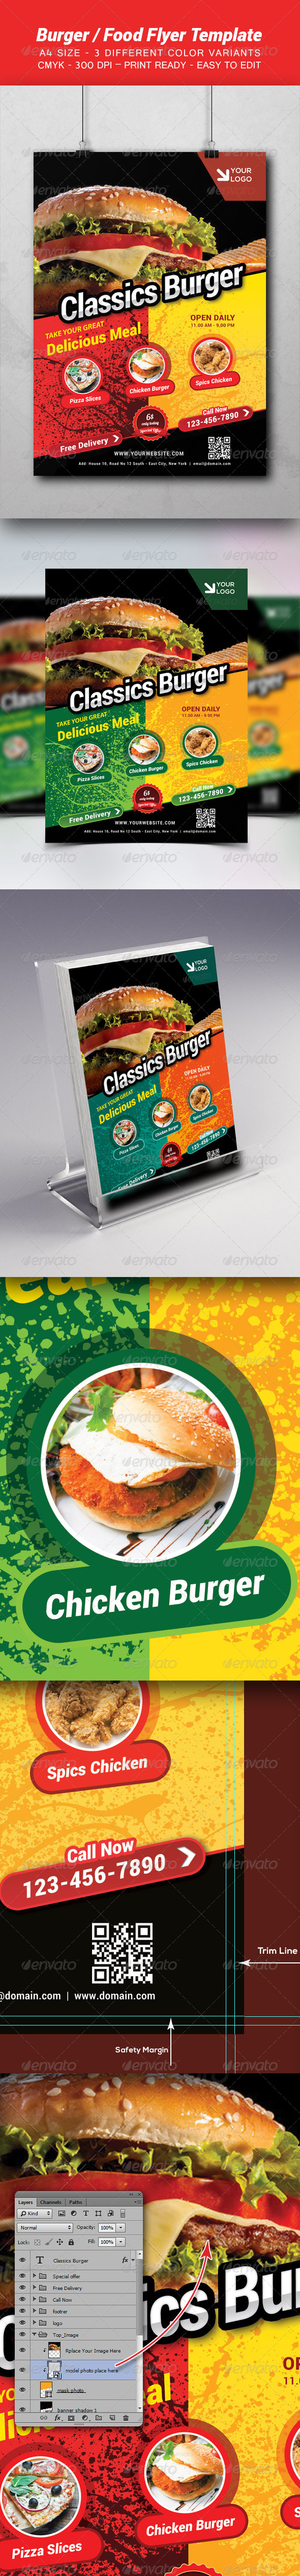 GraphicRiver Burger Food Template 8724063